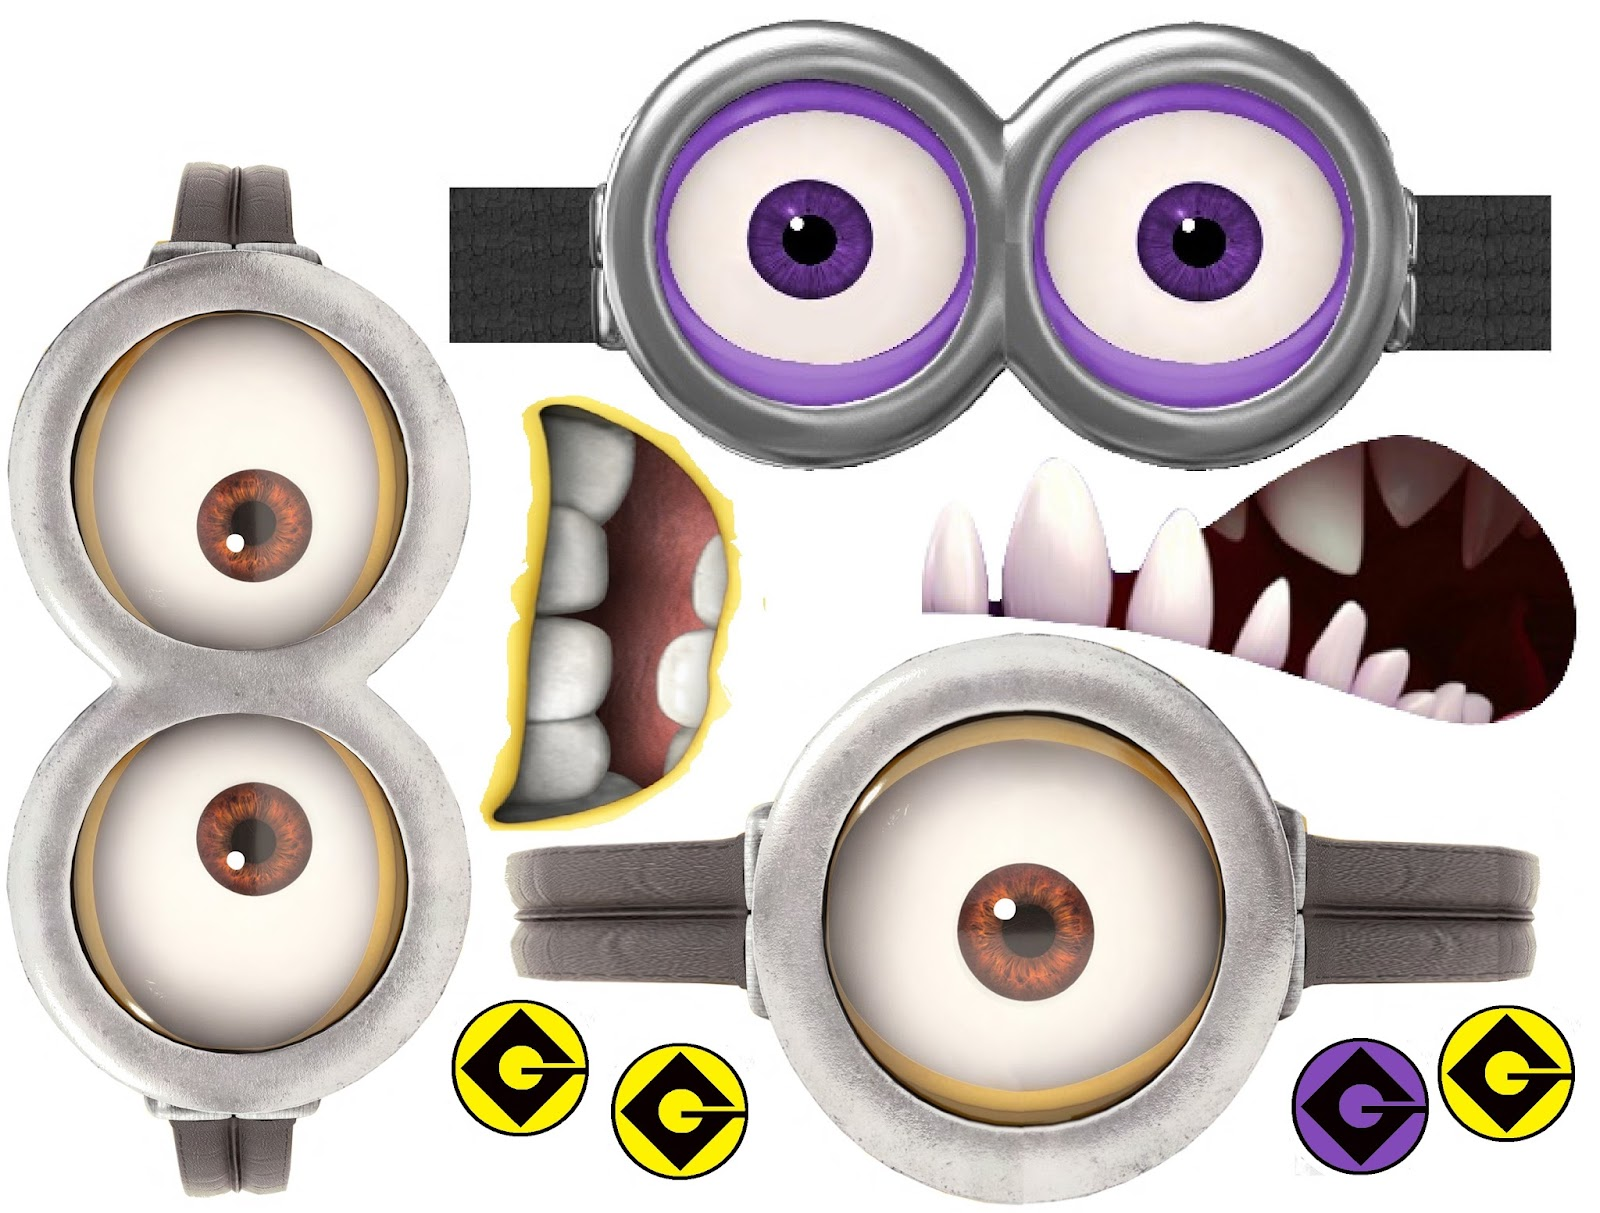 Légend image in minion eye printable